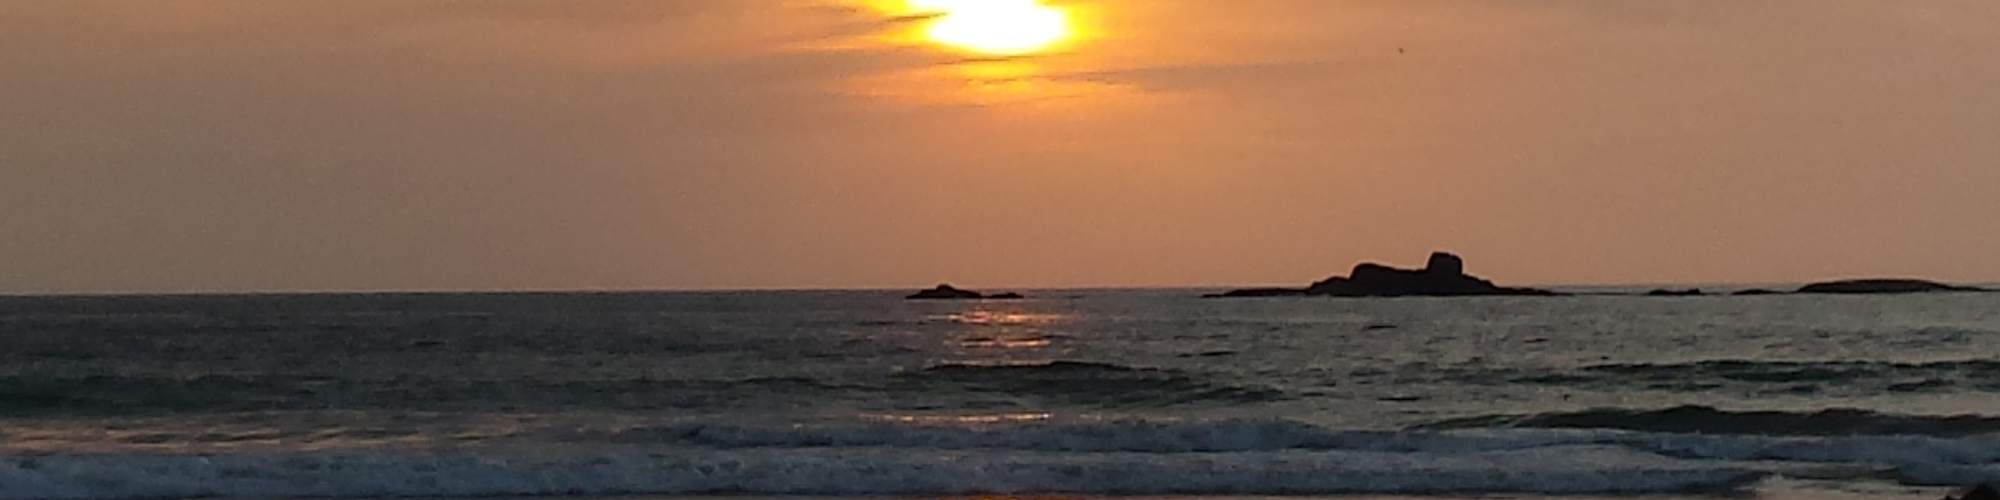 Sunset in southern Sri Lanka